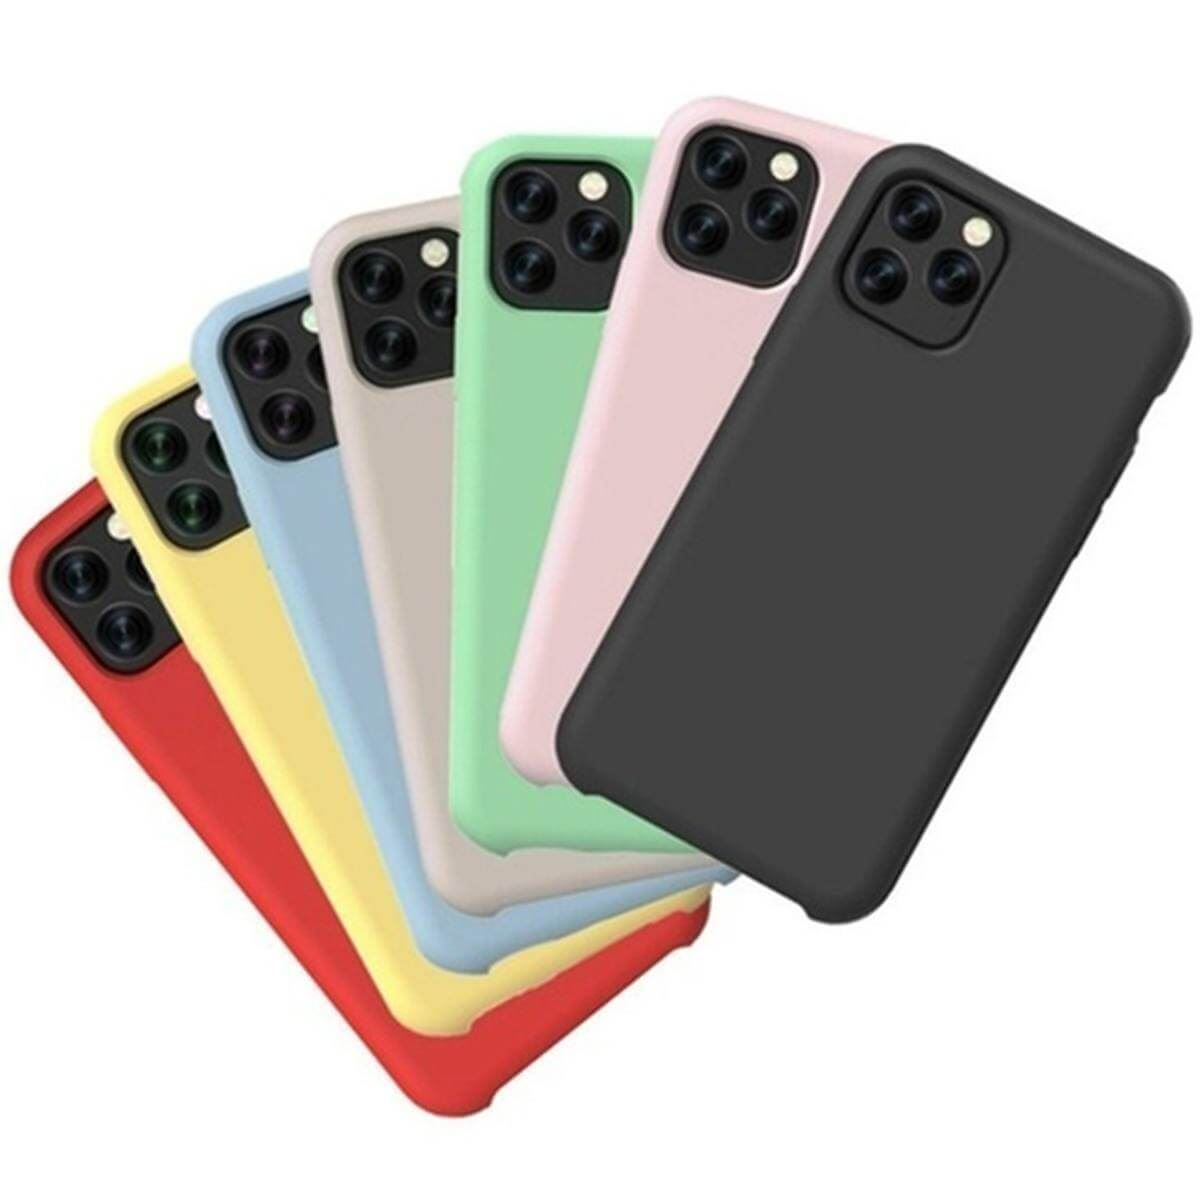 Liquid-Silicone-Shockproof-Case-For-Apple-iPhone-Soft-Matte-Back-Phone-Cover thumbnail 5